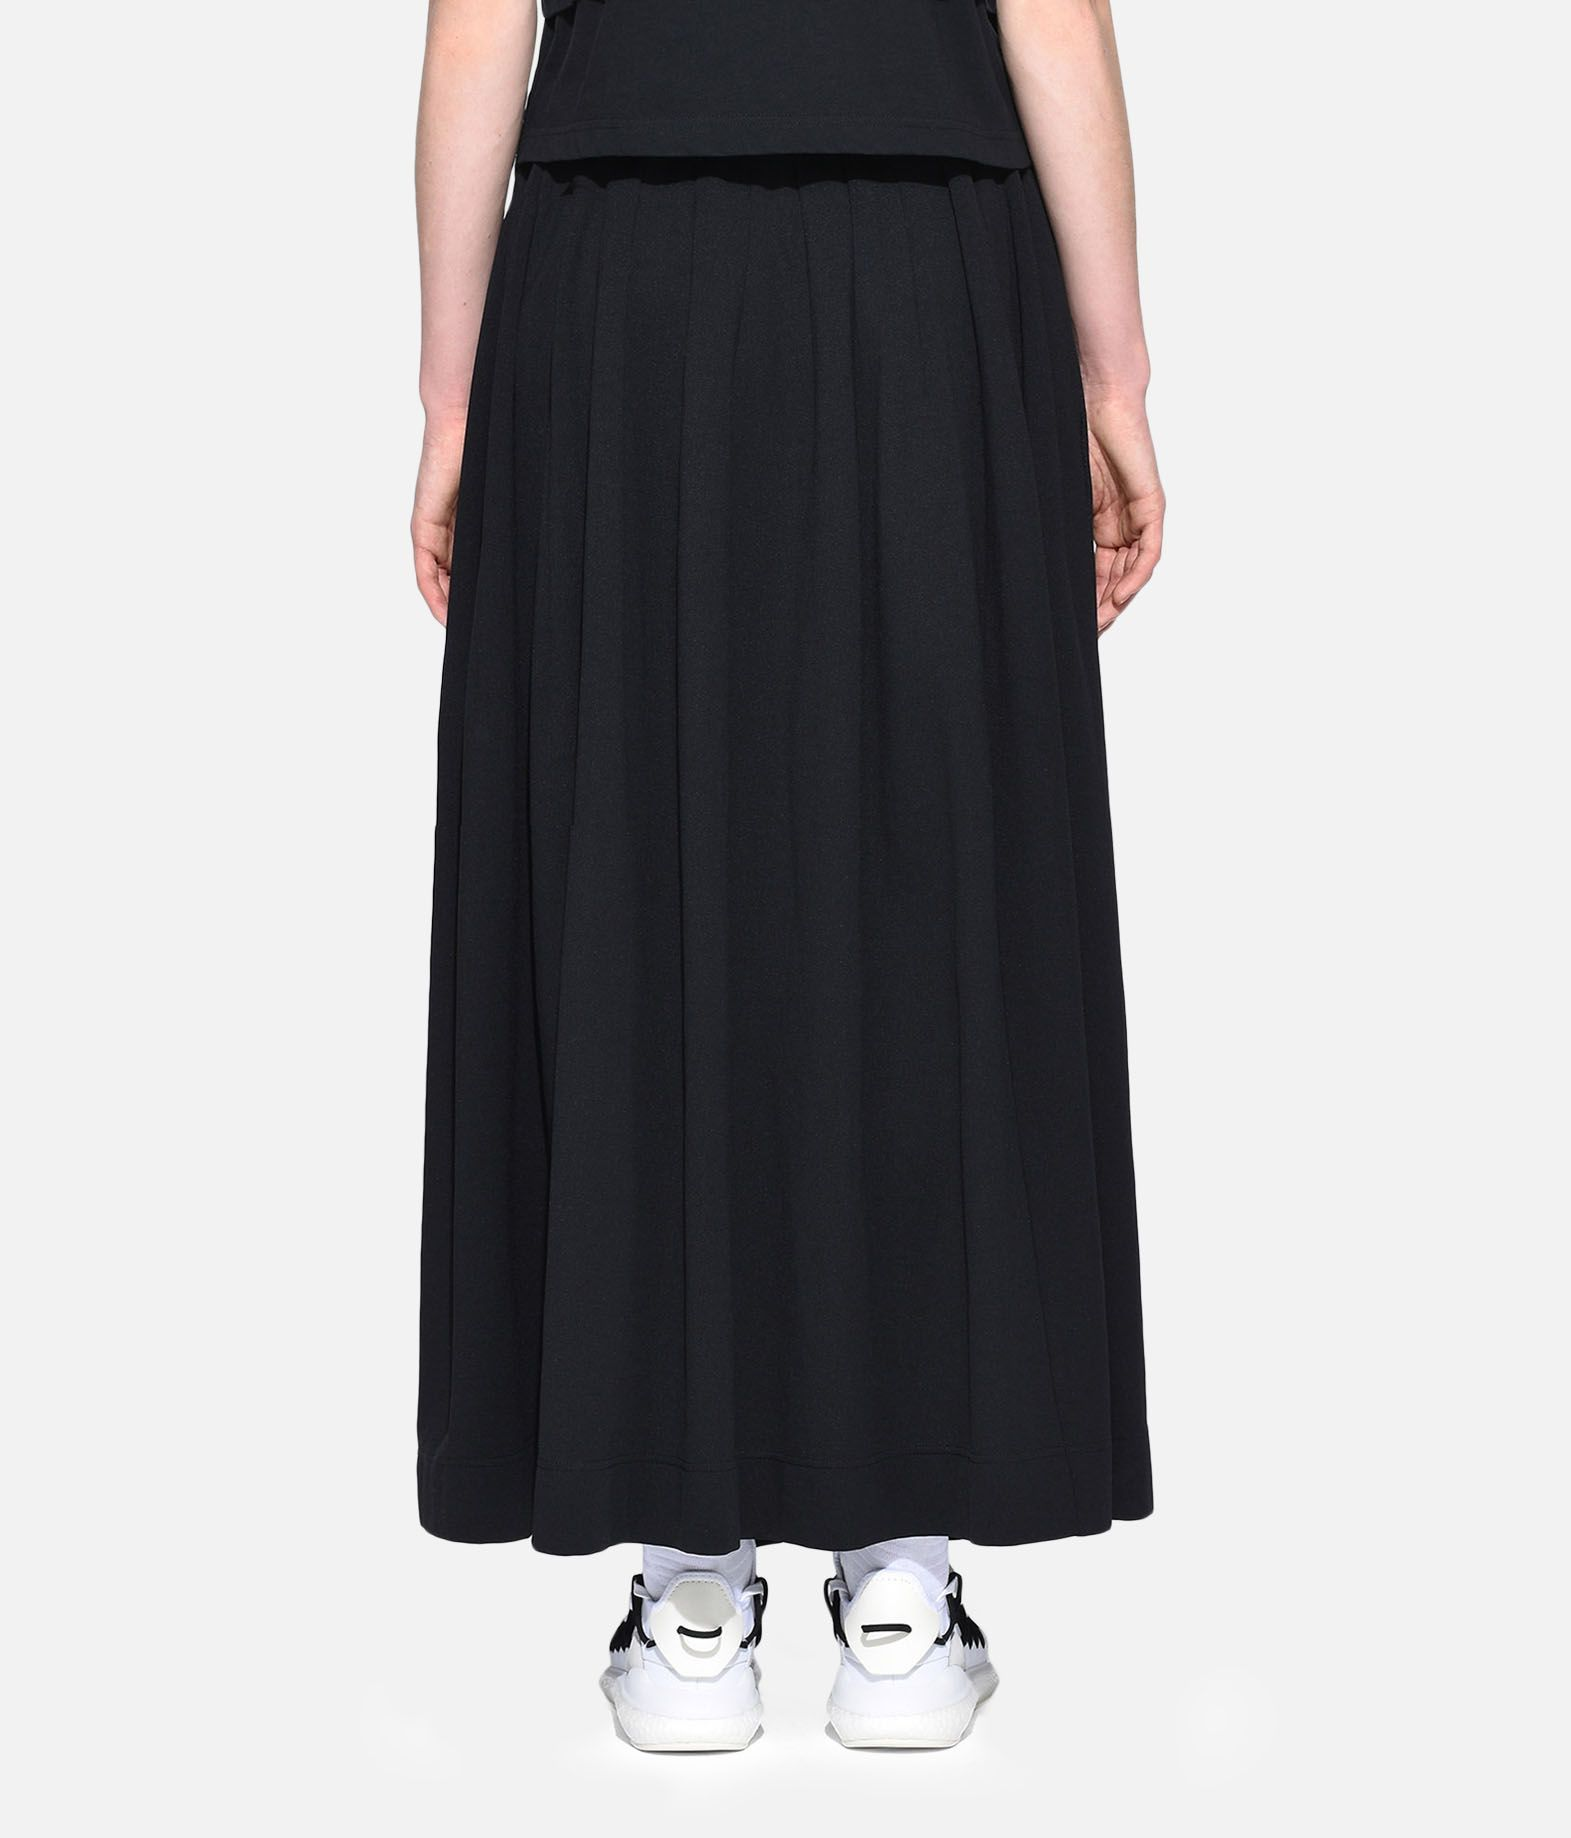 Y-3 Y-3 3-Stripes Selvedge Matte Track Skirt Knee length skirt Woman d